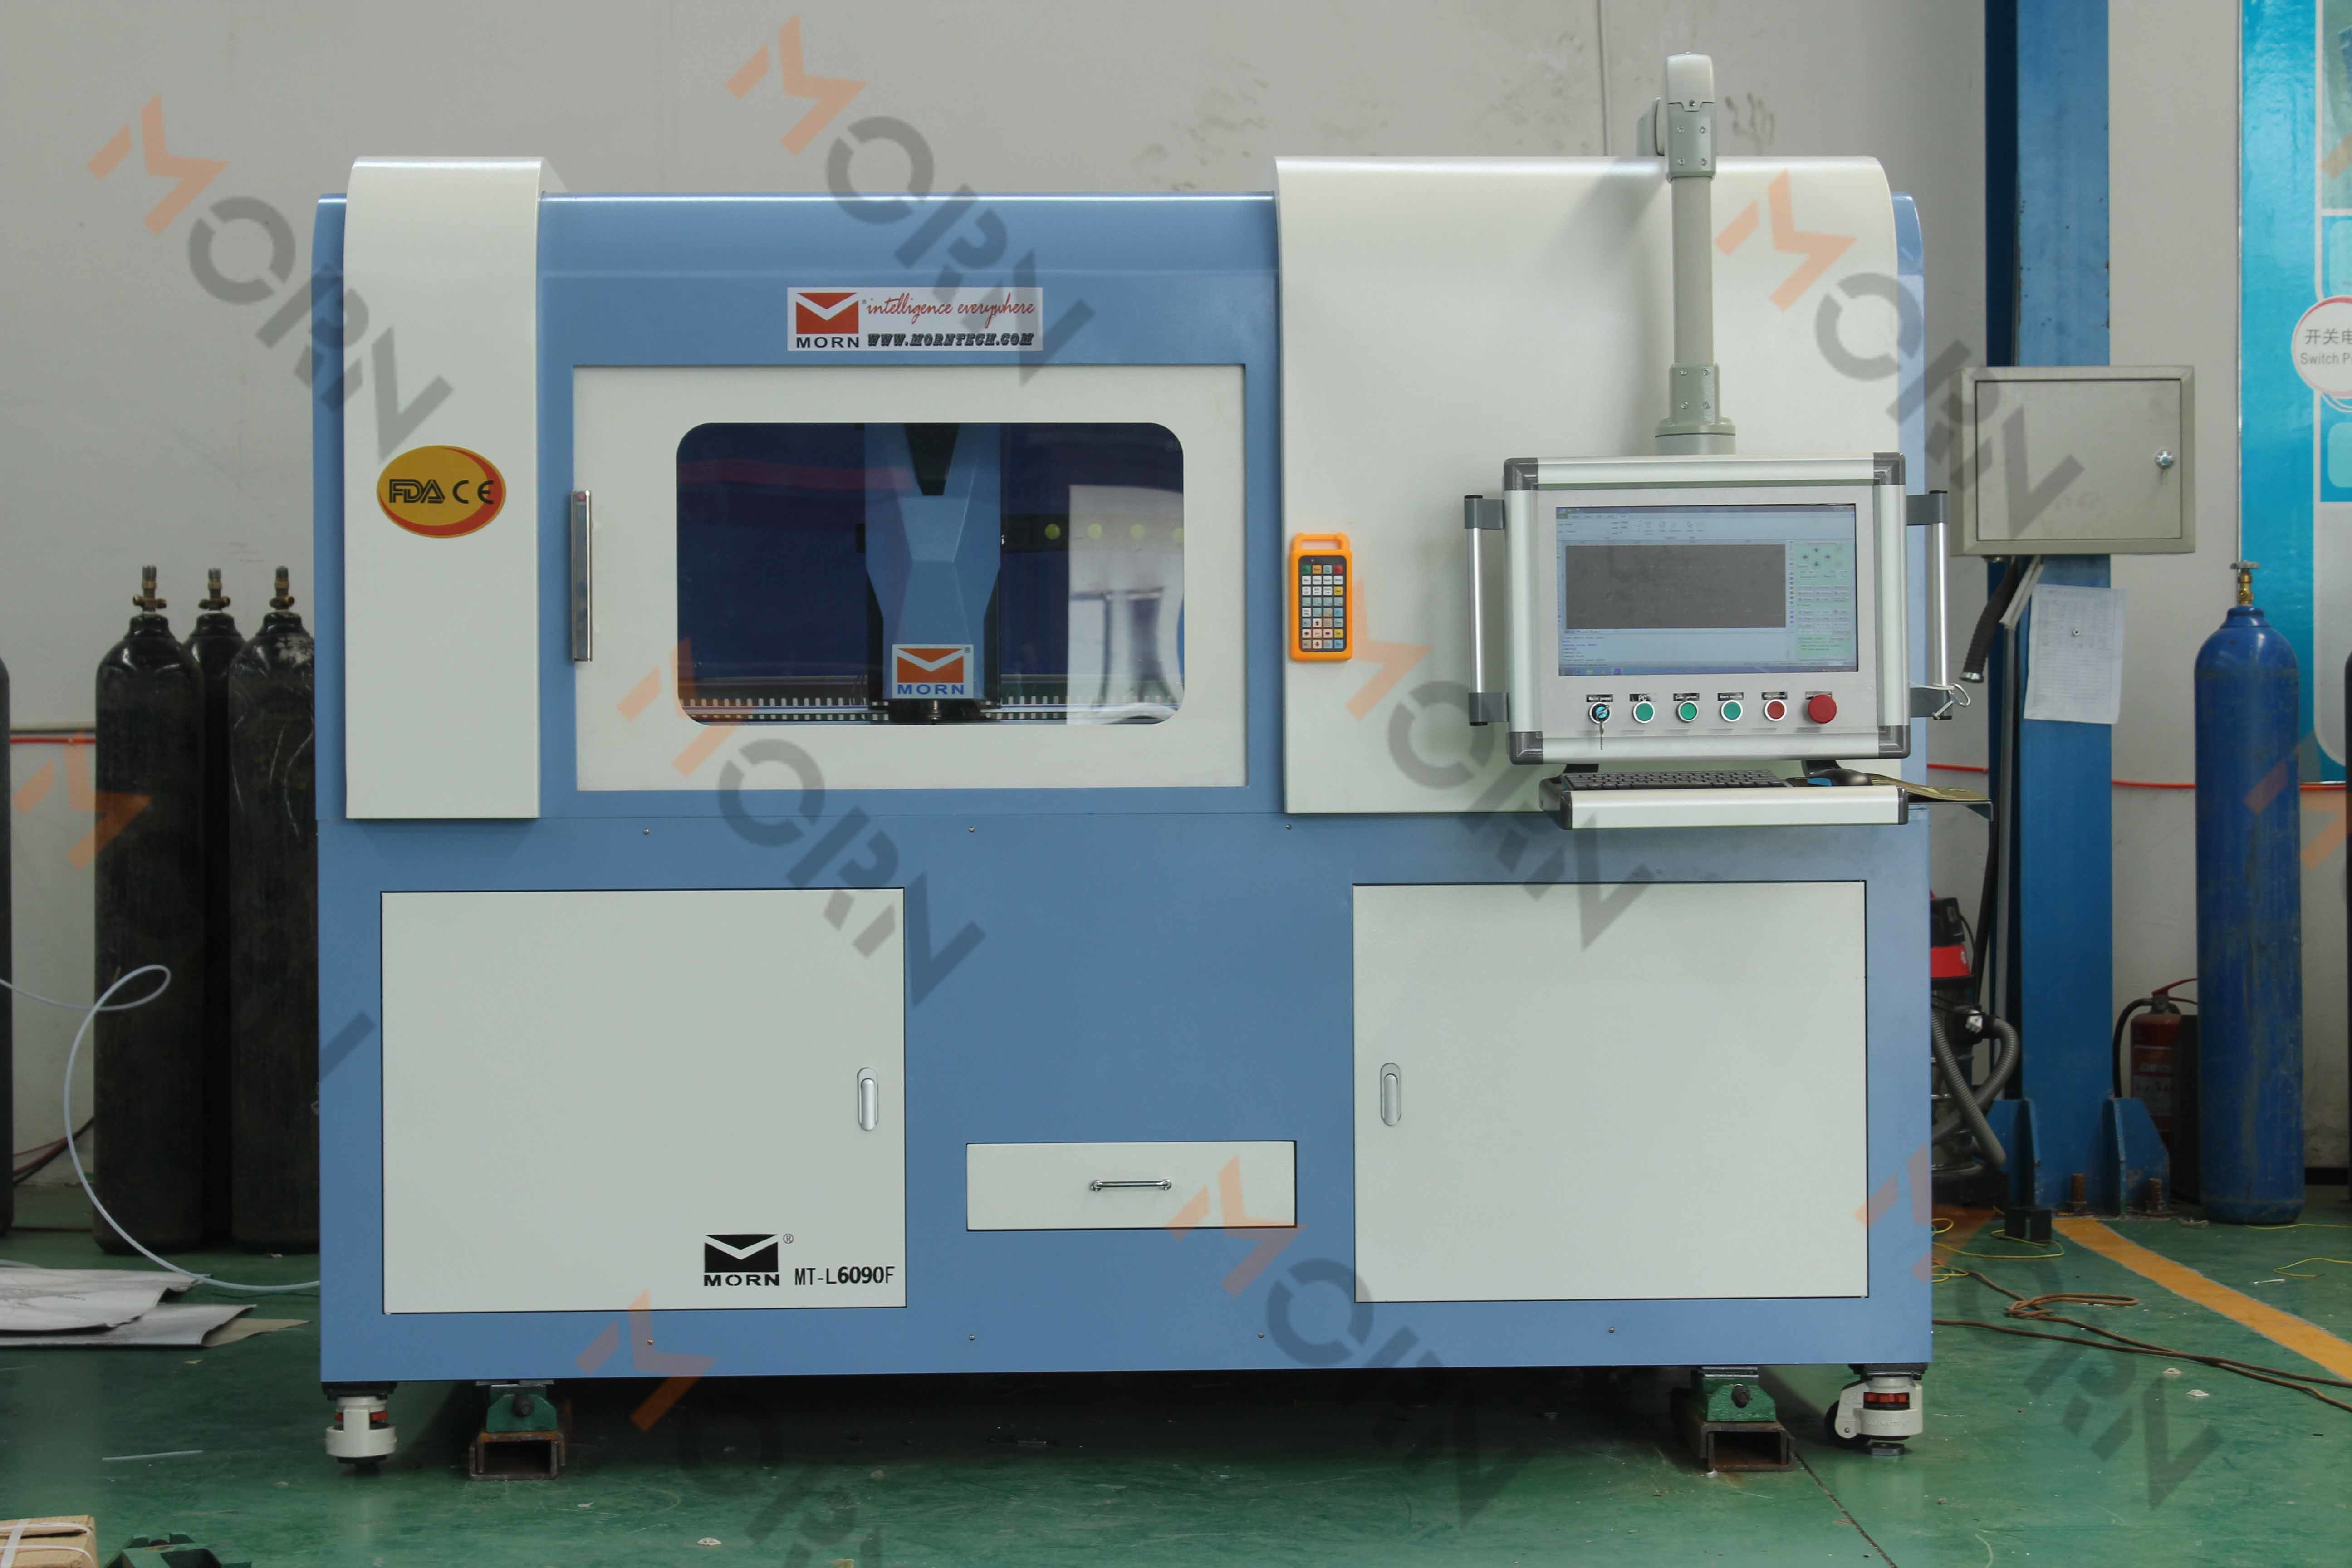 Small Size Metal Fiber Laser Cutting Machine with Safety Cover